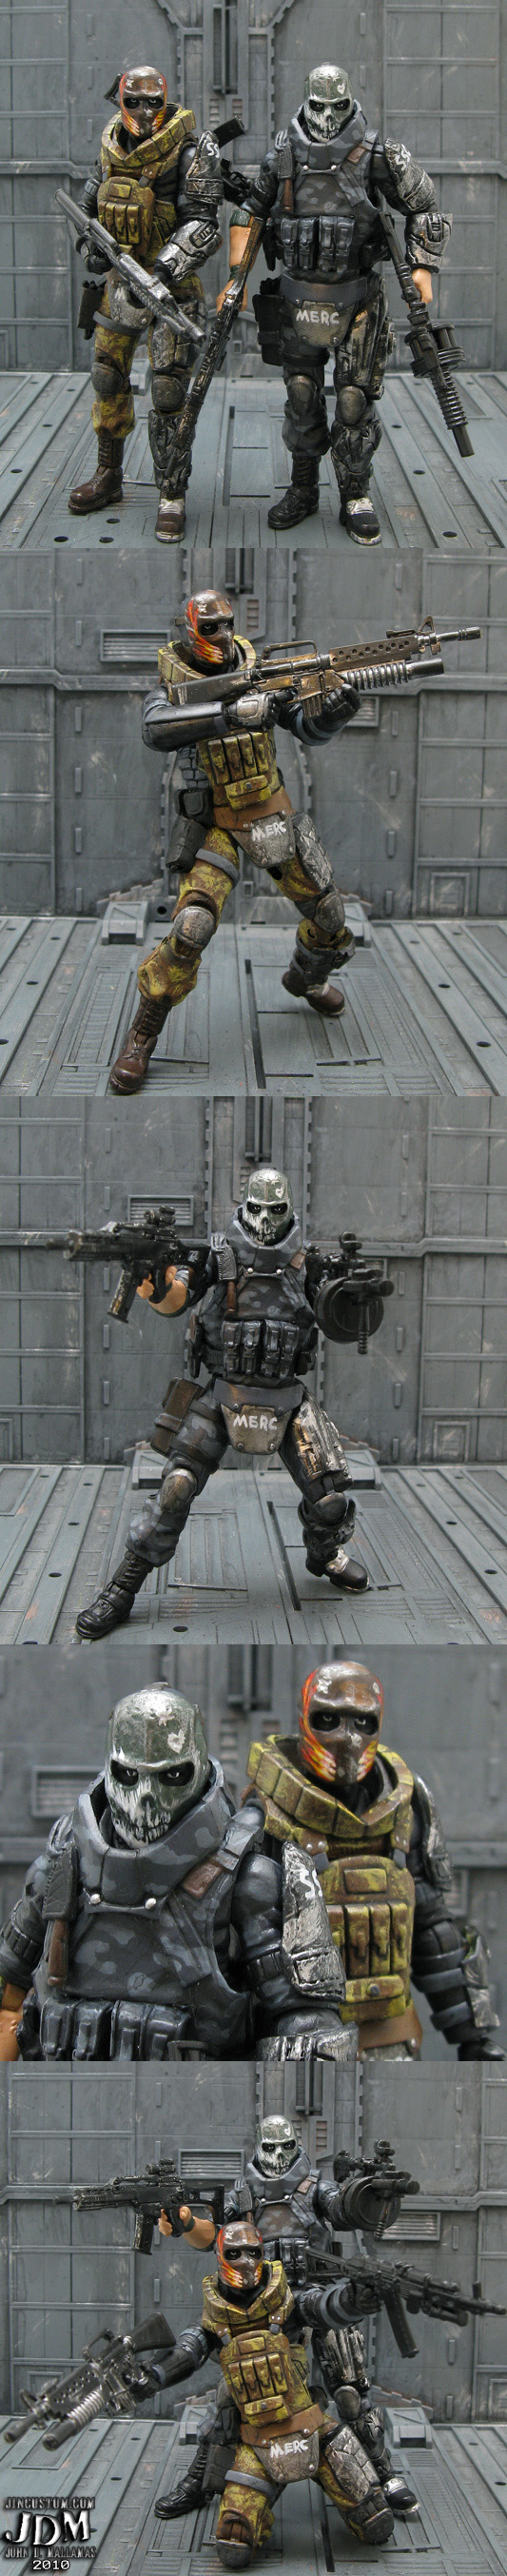 Army of Two figures